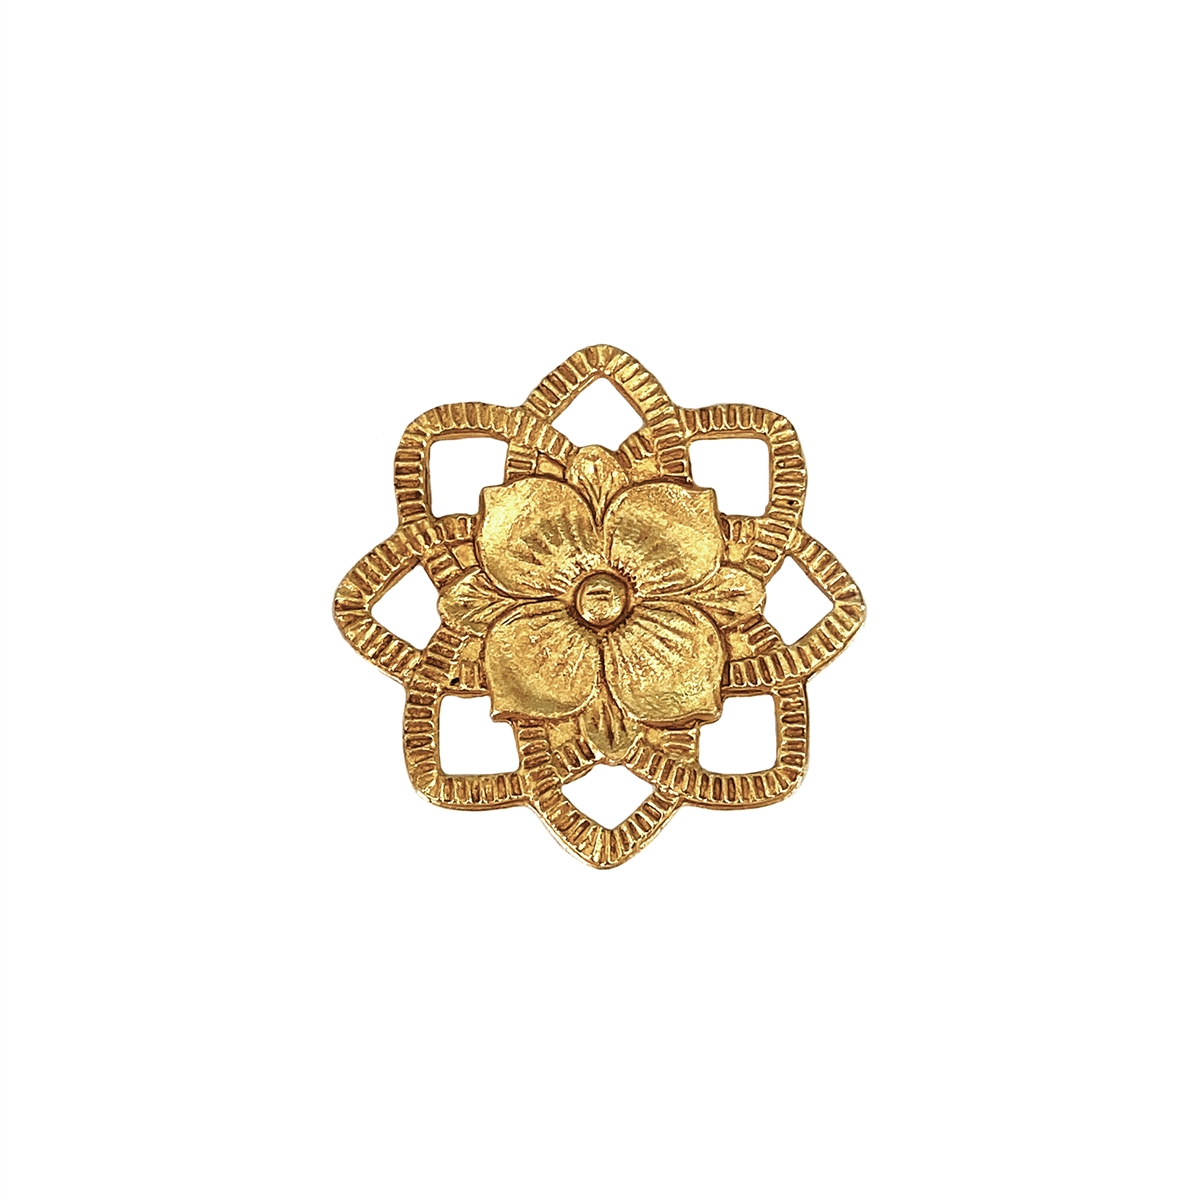 brass flower brass connector jewelry making classic gold antique